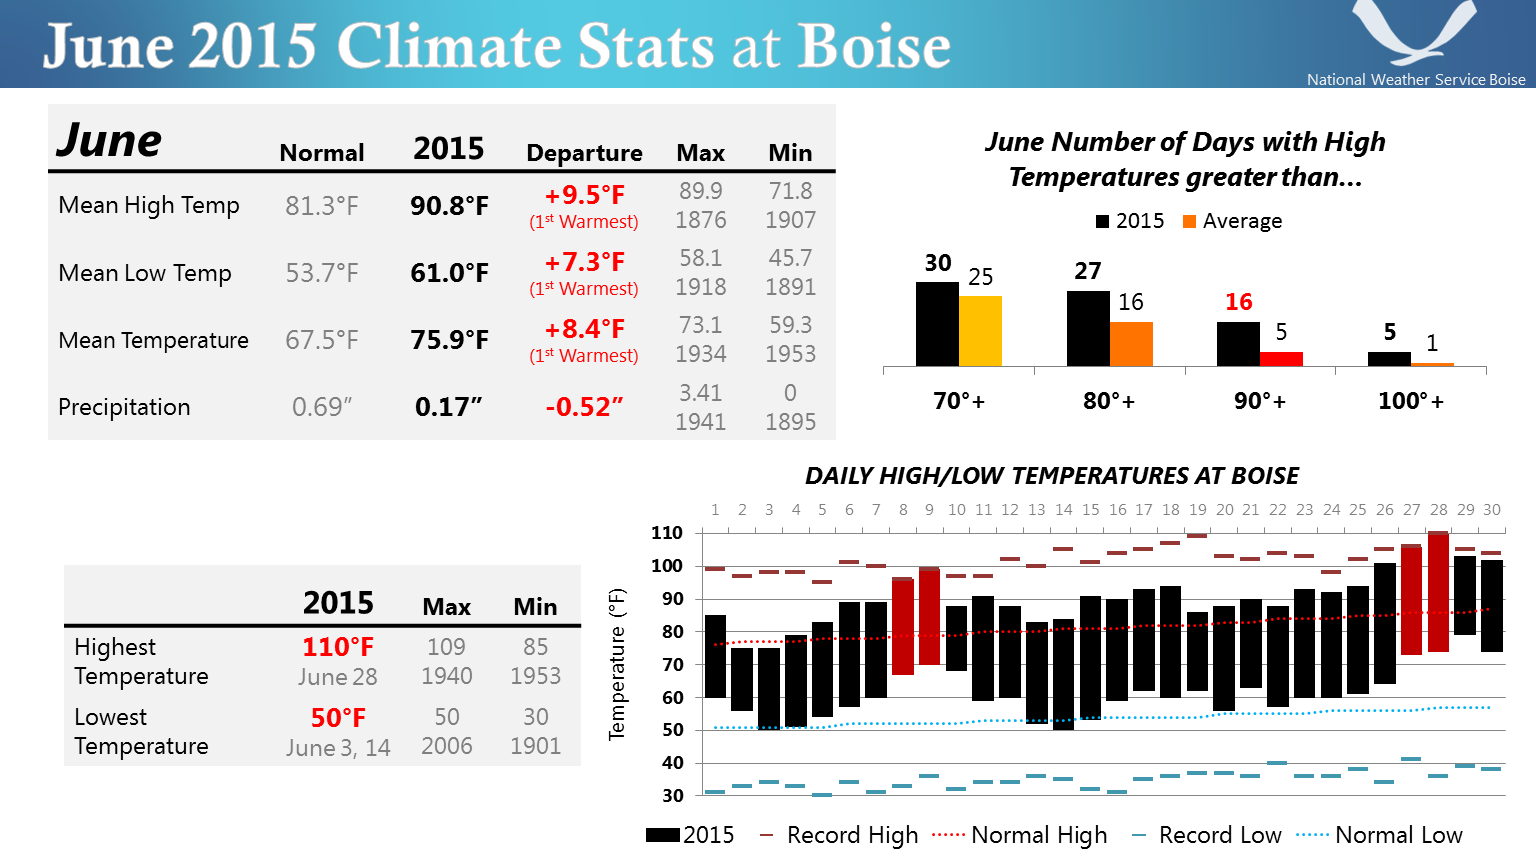 June 2015 Climate Stats at Boise